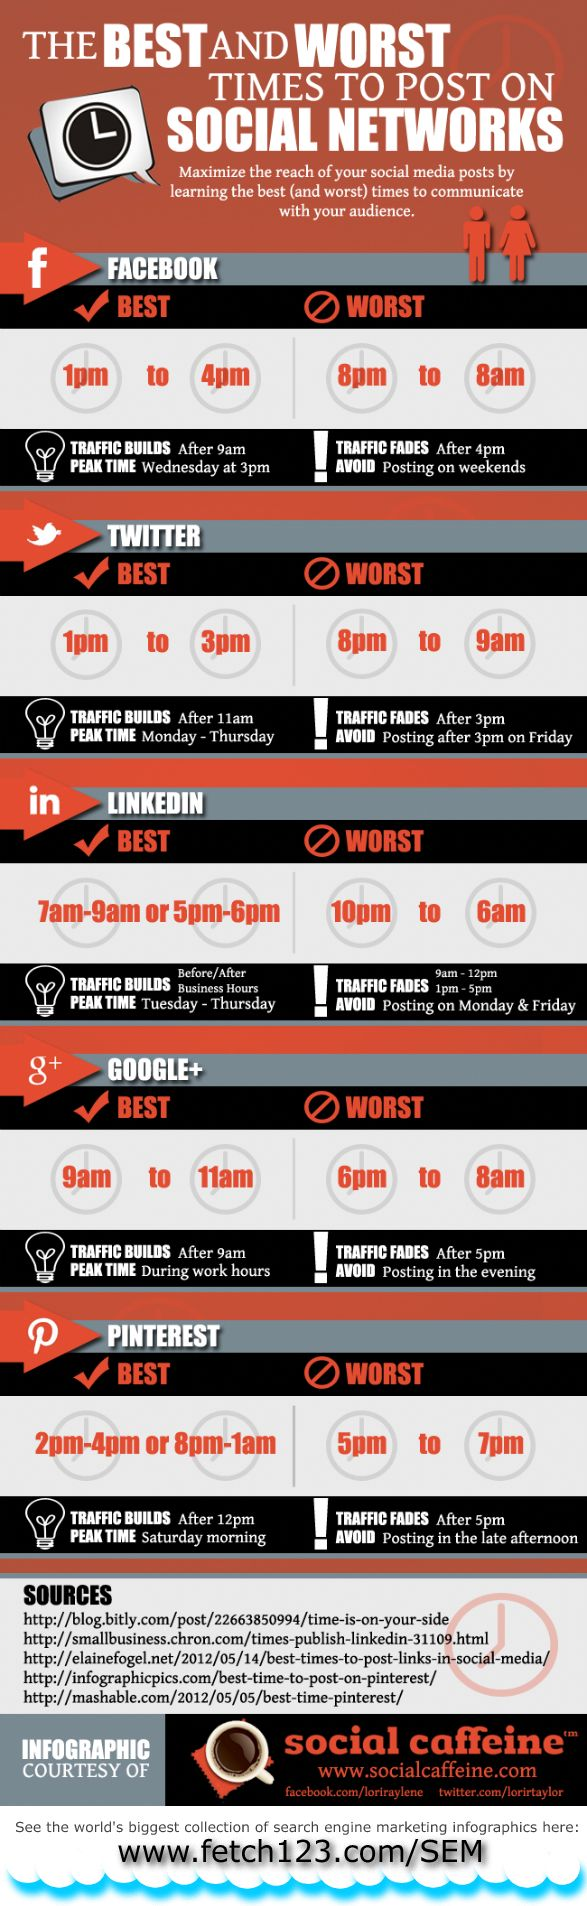 best and worst time to post to social media, courtesy social caffeine